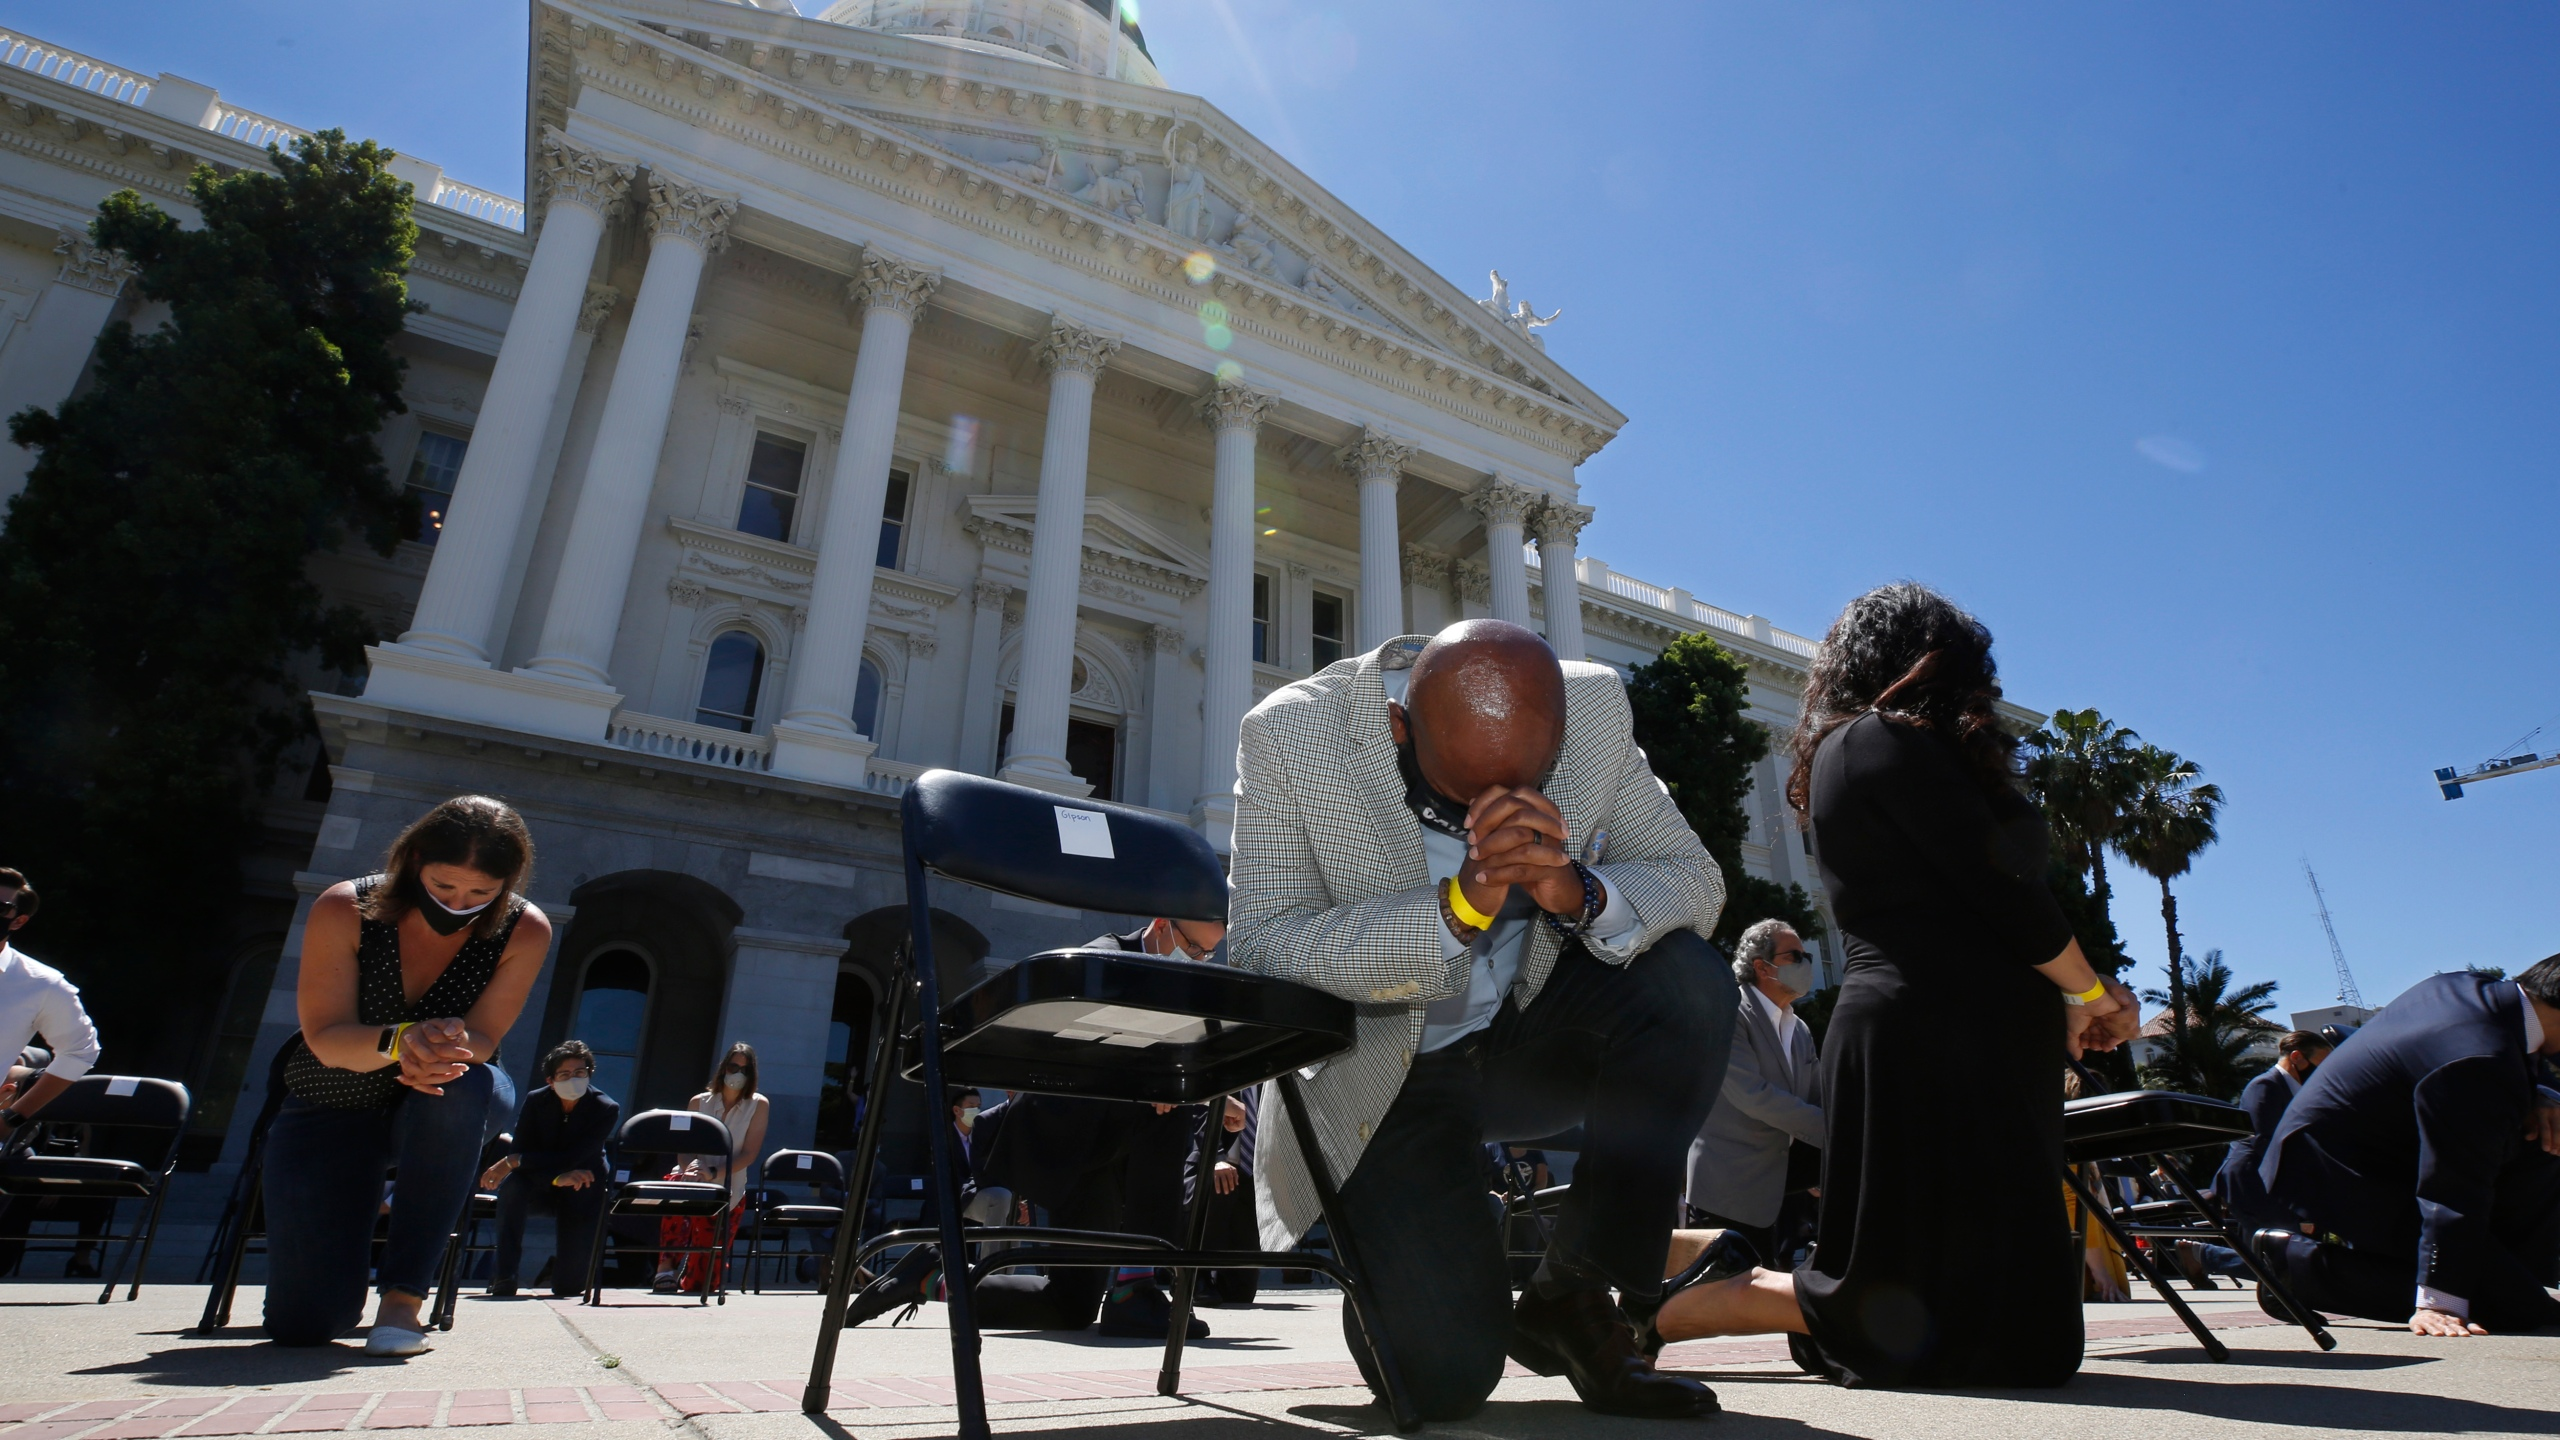 """In this June 9, 2020, file photo, Assemblyman Mike Gipson, D-Carson, bows his head as he and other members of the California Legislature kneel to honor George Floyd at the Capitol in Sacramento, Calif. Lawmakers approved, Thursday, Sept. 9, 2021, Gipson's measure that would prohibit police from using techniques that create a substantial risk of what's known as """"positional asphyxia."""" (AP Photo/Rich Pedroncelli, File)"""